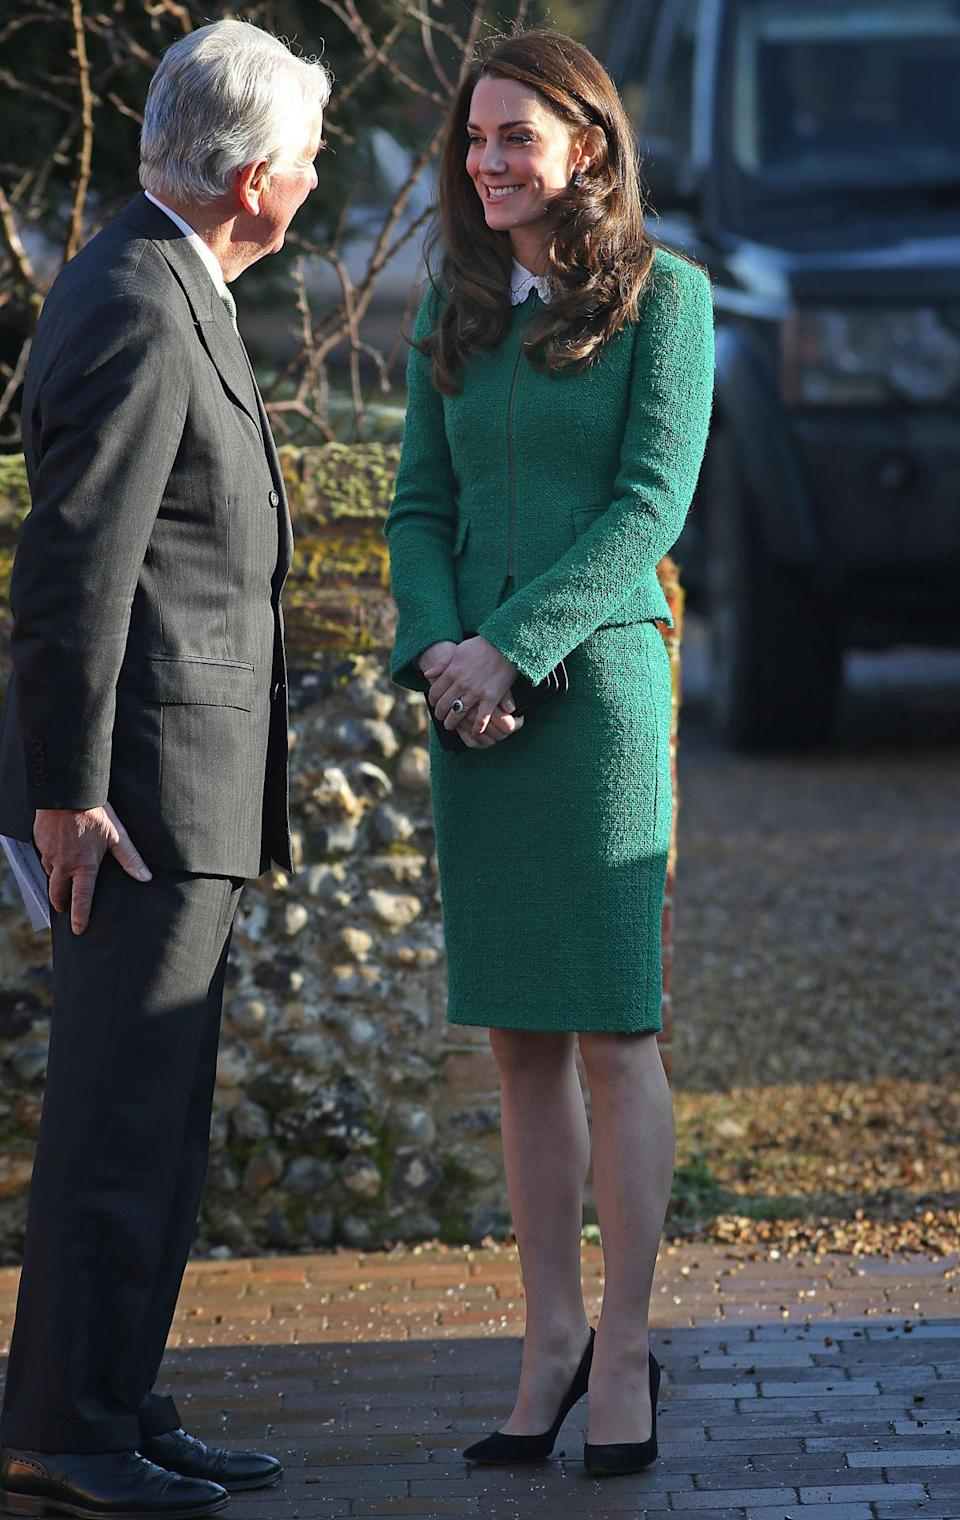 <p>The Duchess debuted a new skirt suit from high street retailer, Hobbs, while visiting a children's hospice in Norfolk. The emerald green style is made in an elegant tweed fabric and was paired with a simple white collared shirt and black heels. </p><p><i>[Photo: PA]</i></p>